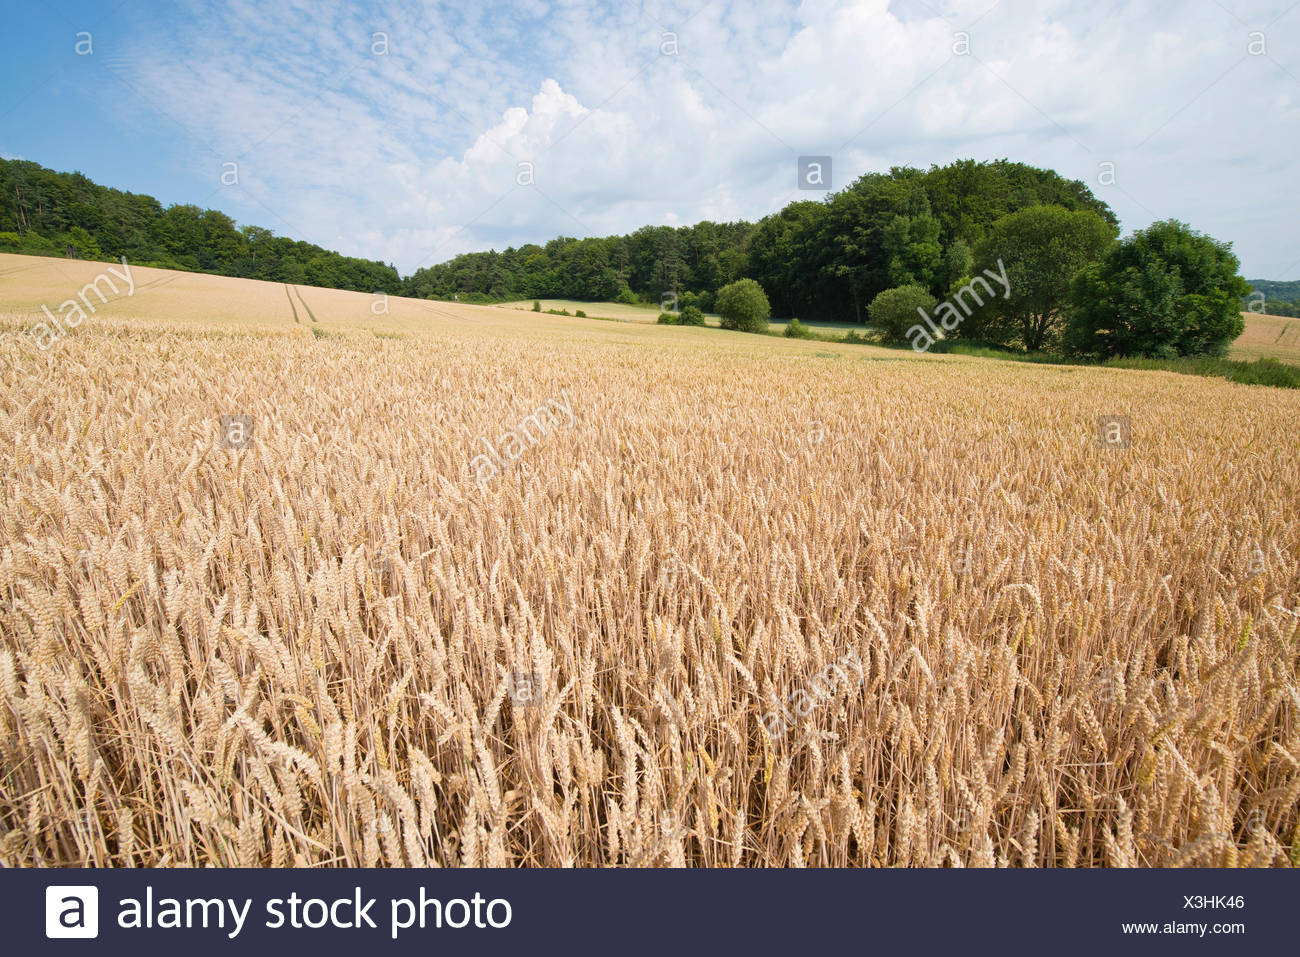 Wheat field, Thuringia, Germany - Stock Image